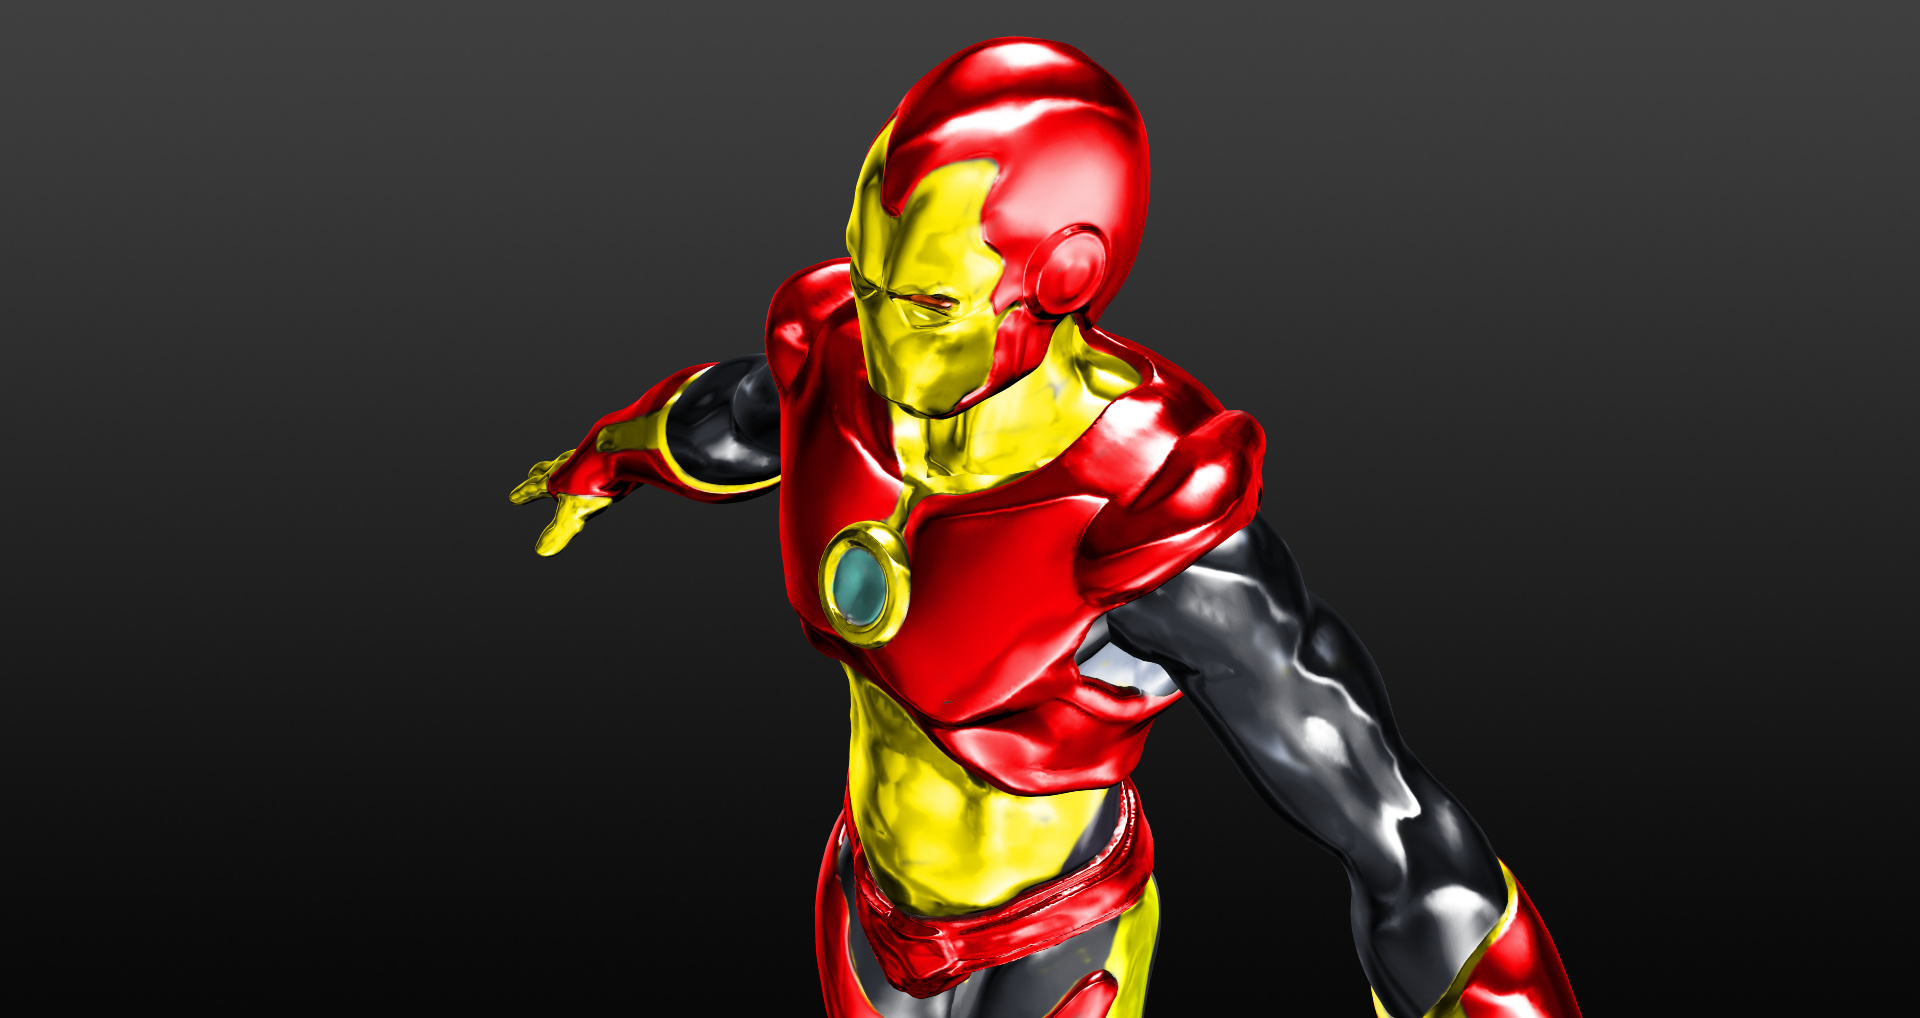 Ironman_Prova24_color3quater_head_side1